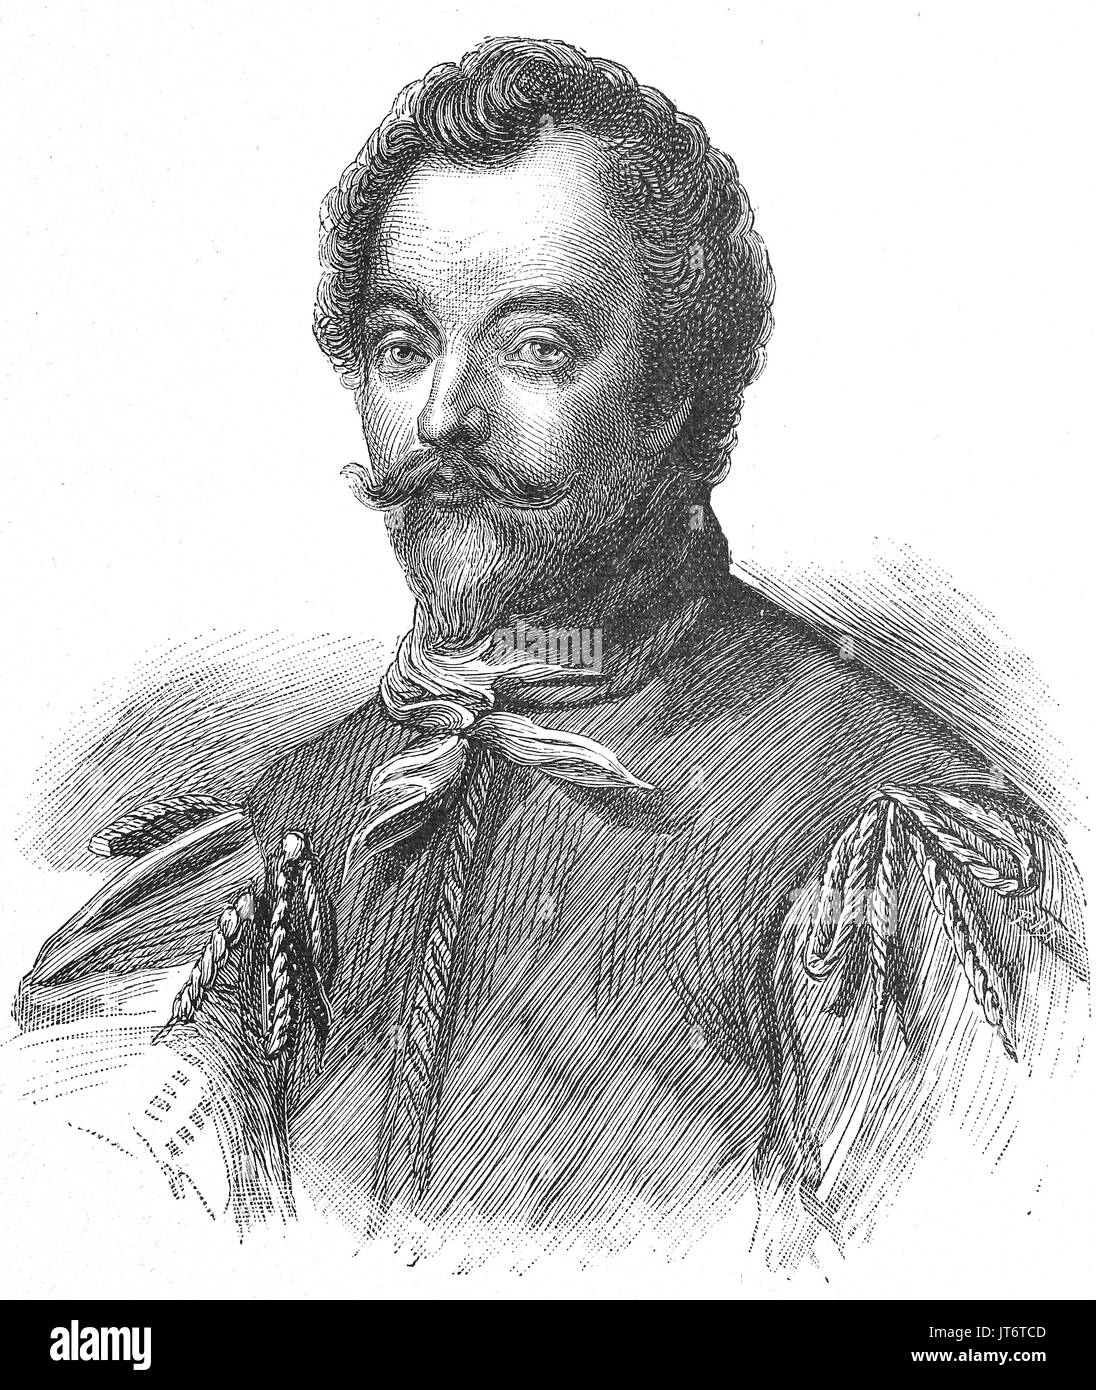 Sir Francis Drake, vice admiral, 1540 - 1596, was an English sea captain, privateer, navigator, slaver and politician of the Elizabethan era, Digital improved reproduction of an image published between 1880 - 1885 - Stock Image